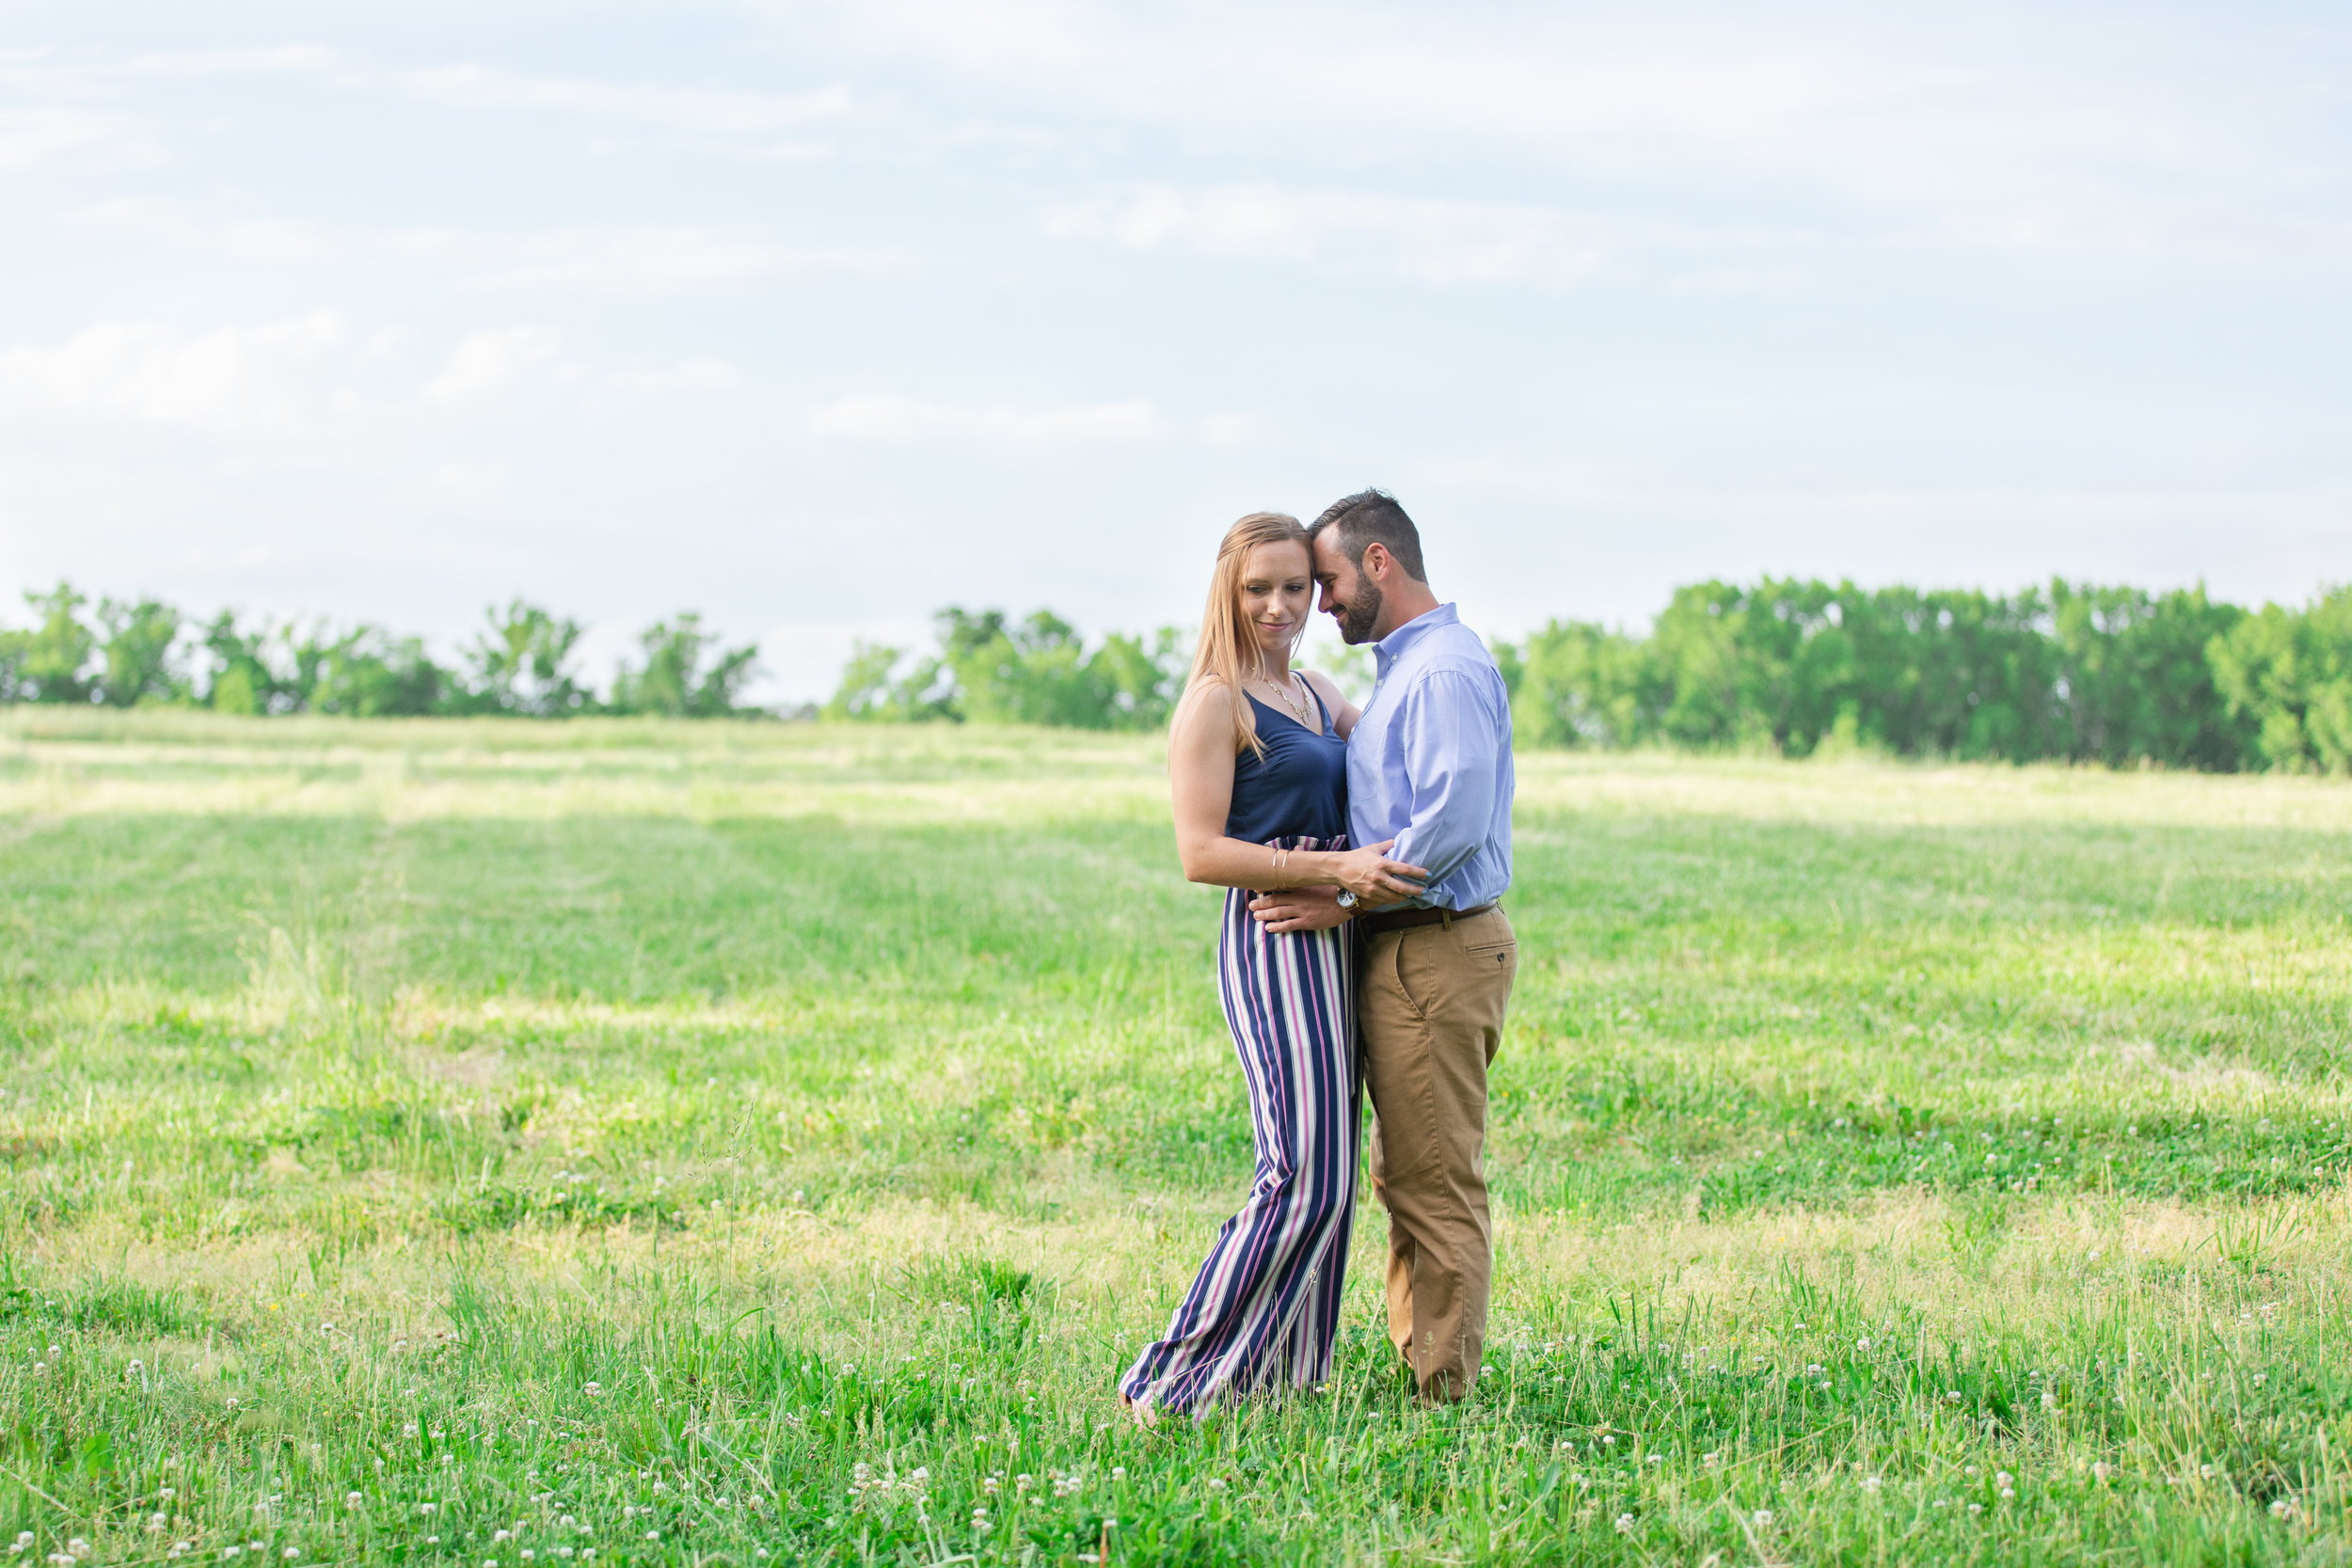 mjmp tuckahoe plantation engagement session photo-14.jpg